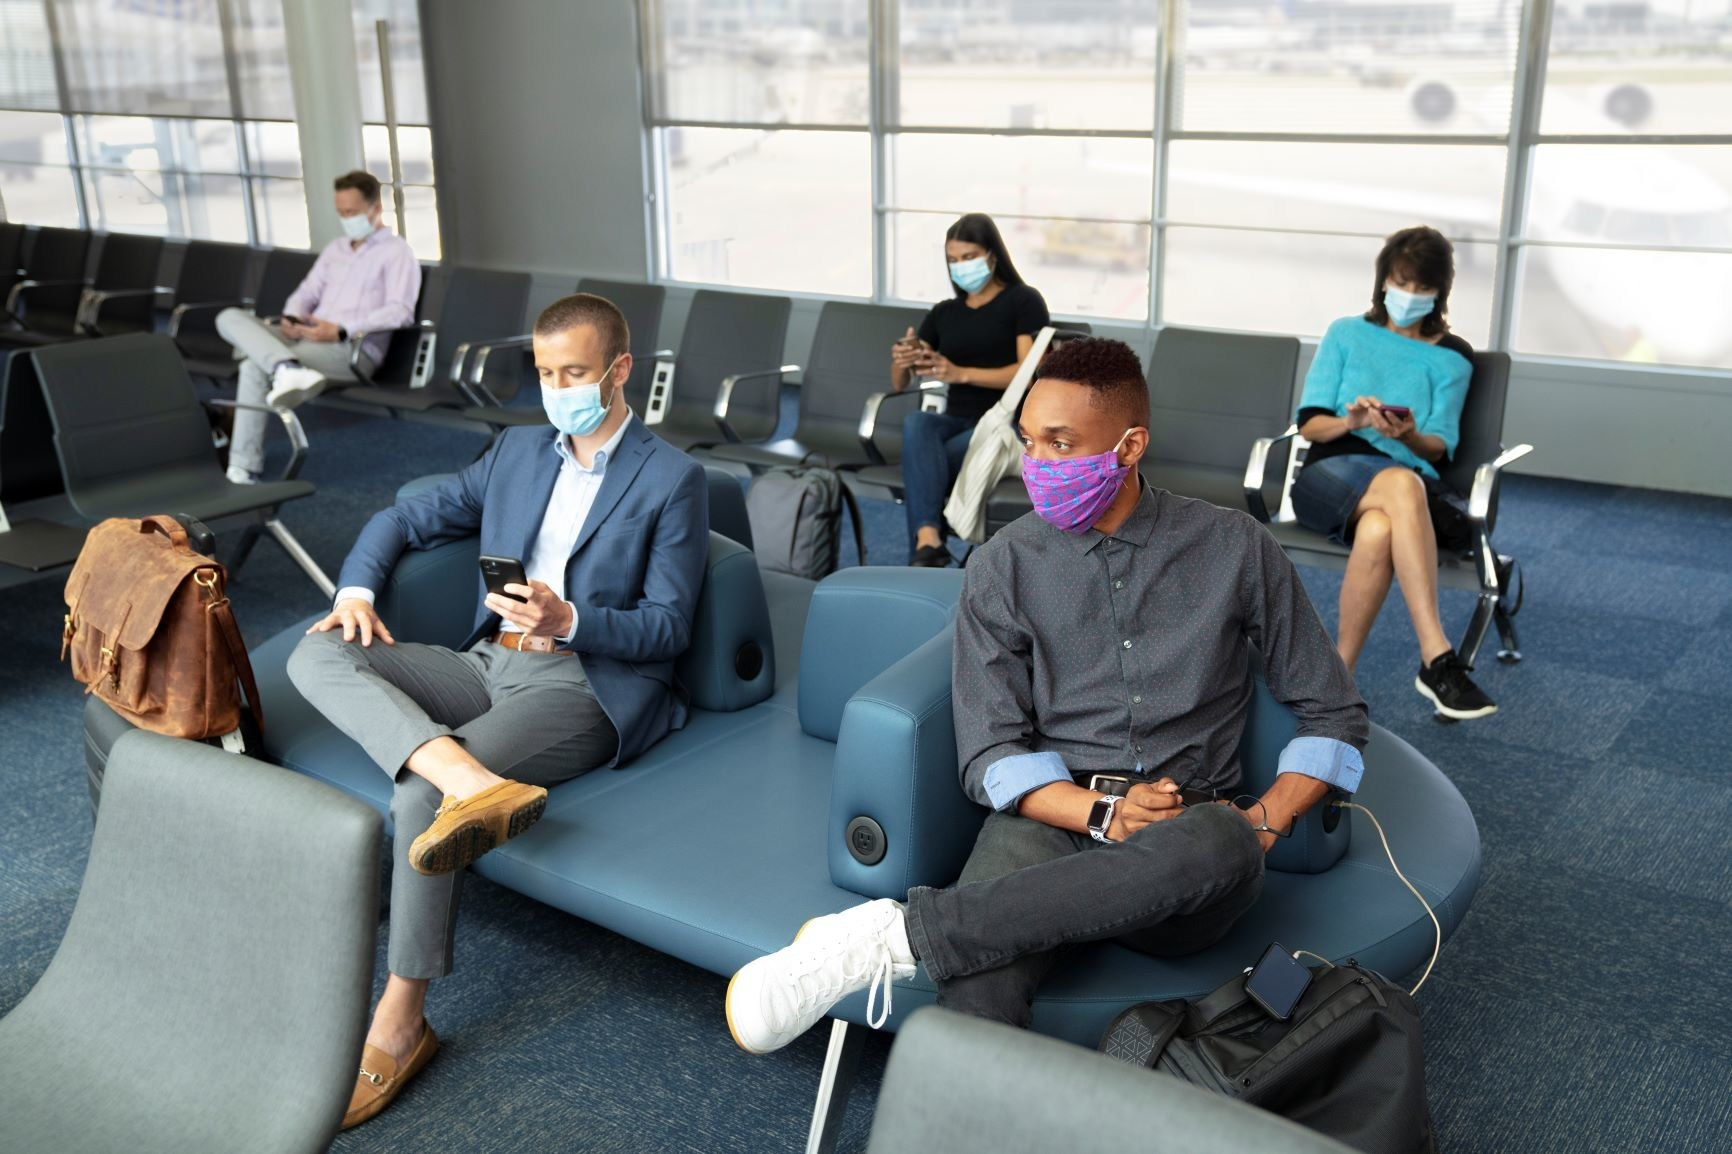 United Airlines, face masks